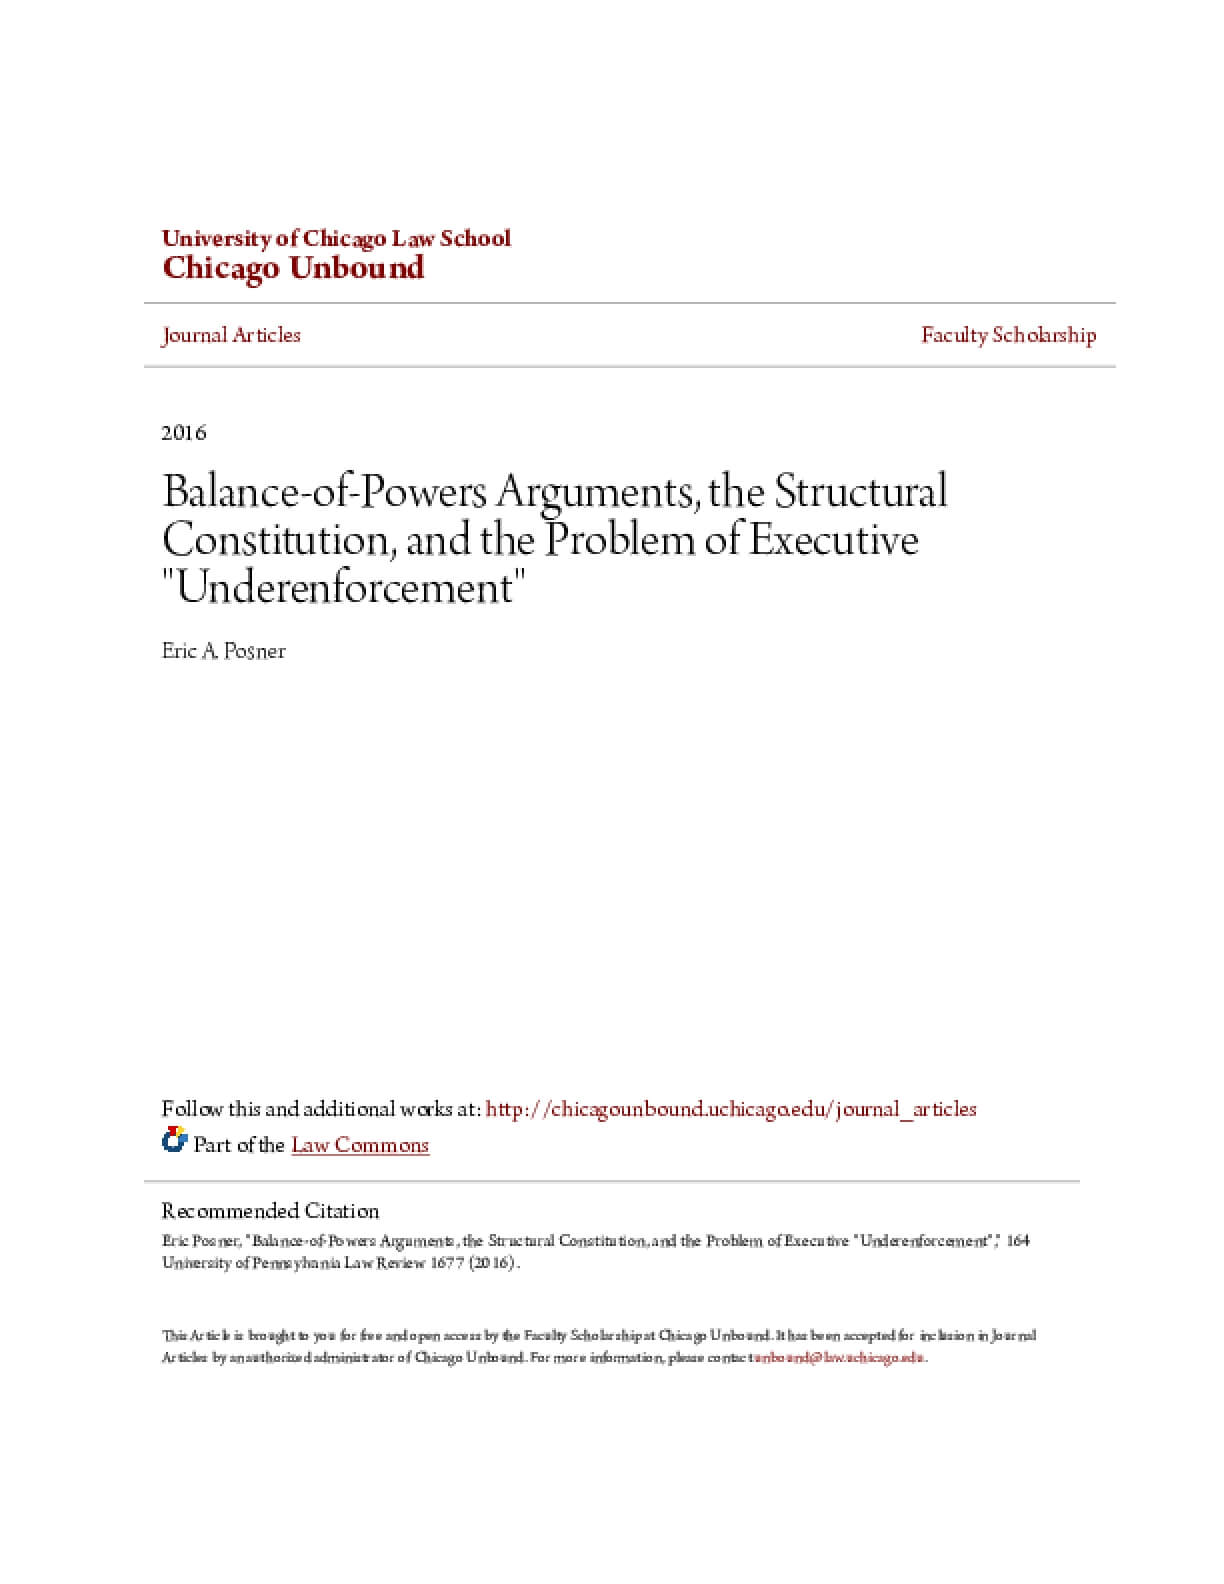 "Balance-of-Powers Arguments, the Structural Constitution, and the Problem of Executive ""Underenforcement"""